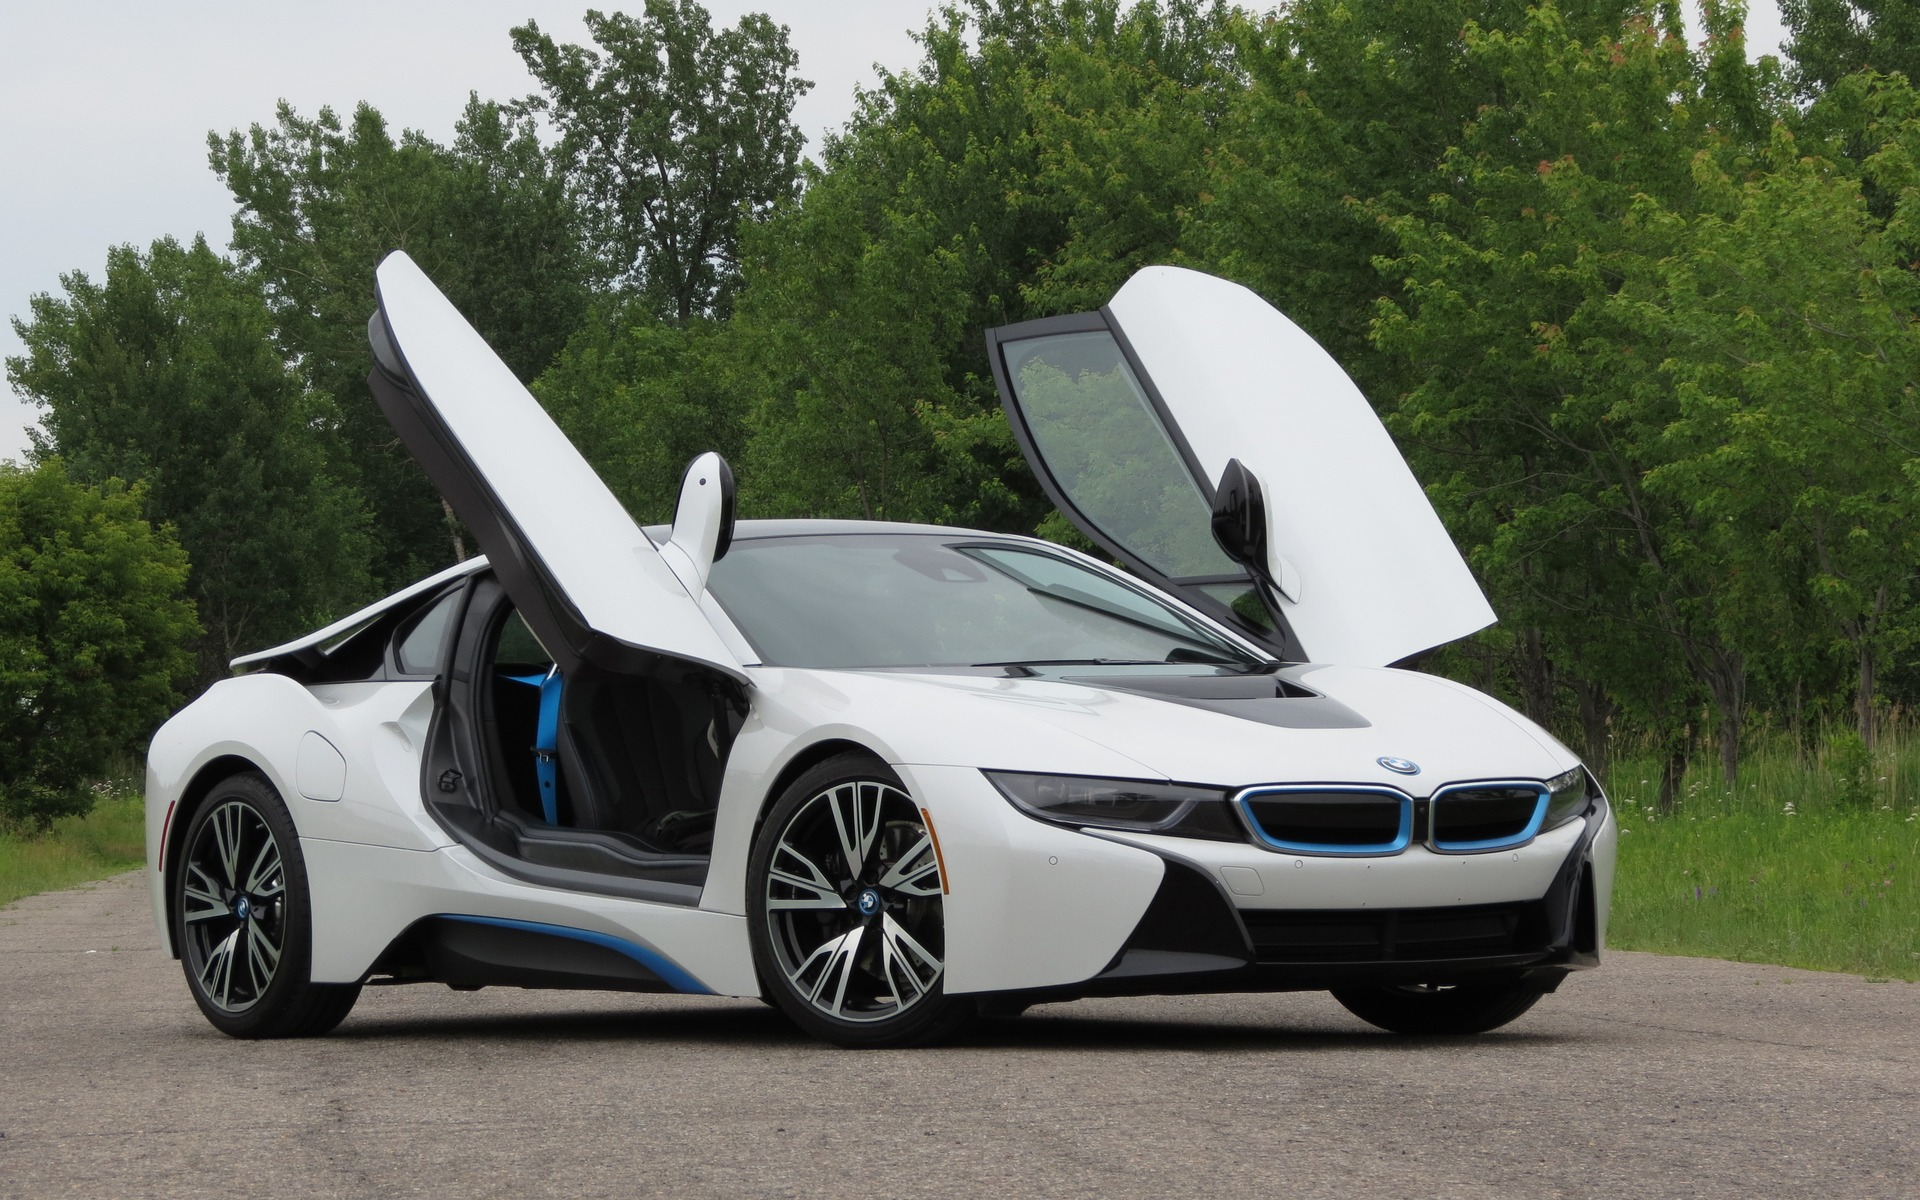 2016 Bmw I8 Photos 1 5 The Car Guide